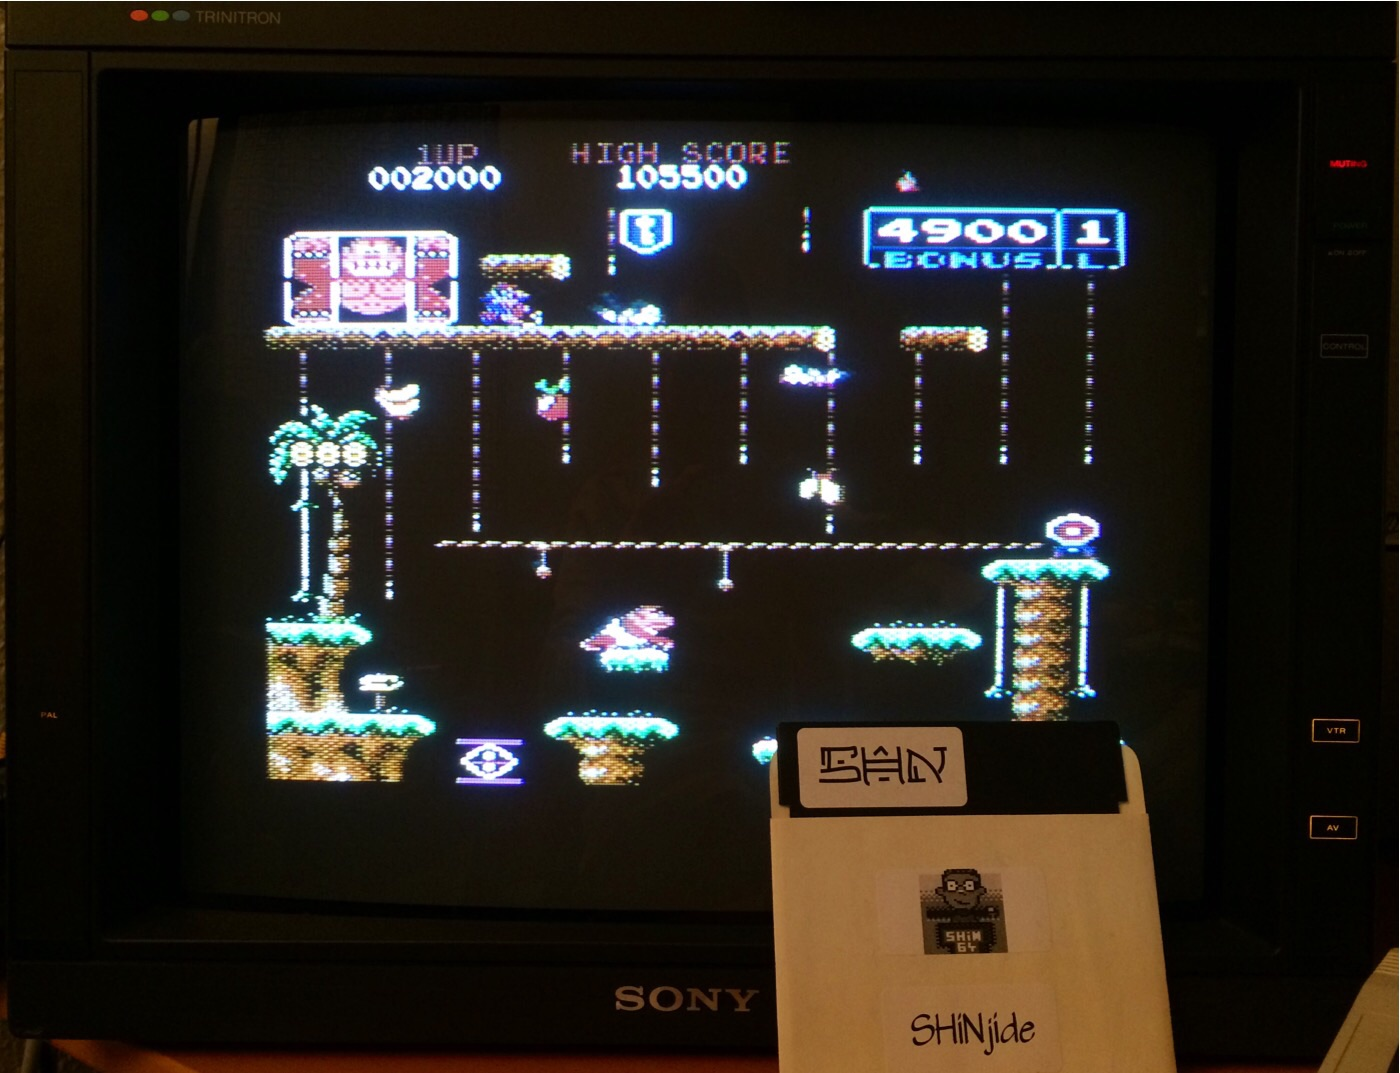 SHiNjide: Donkey Kong Junior: Standard (Commodore 64) 105,500 points on 2014-11-21 13:17:58